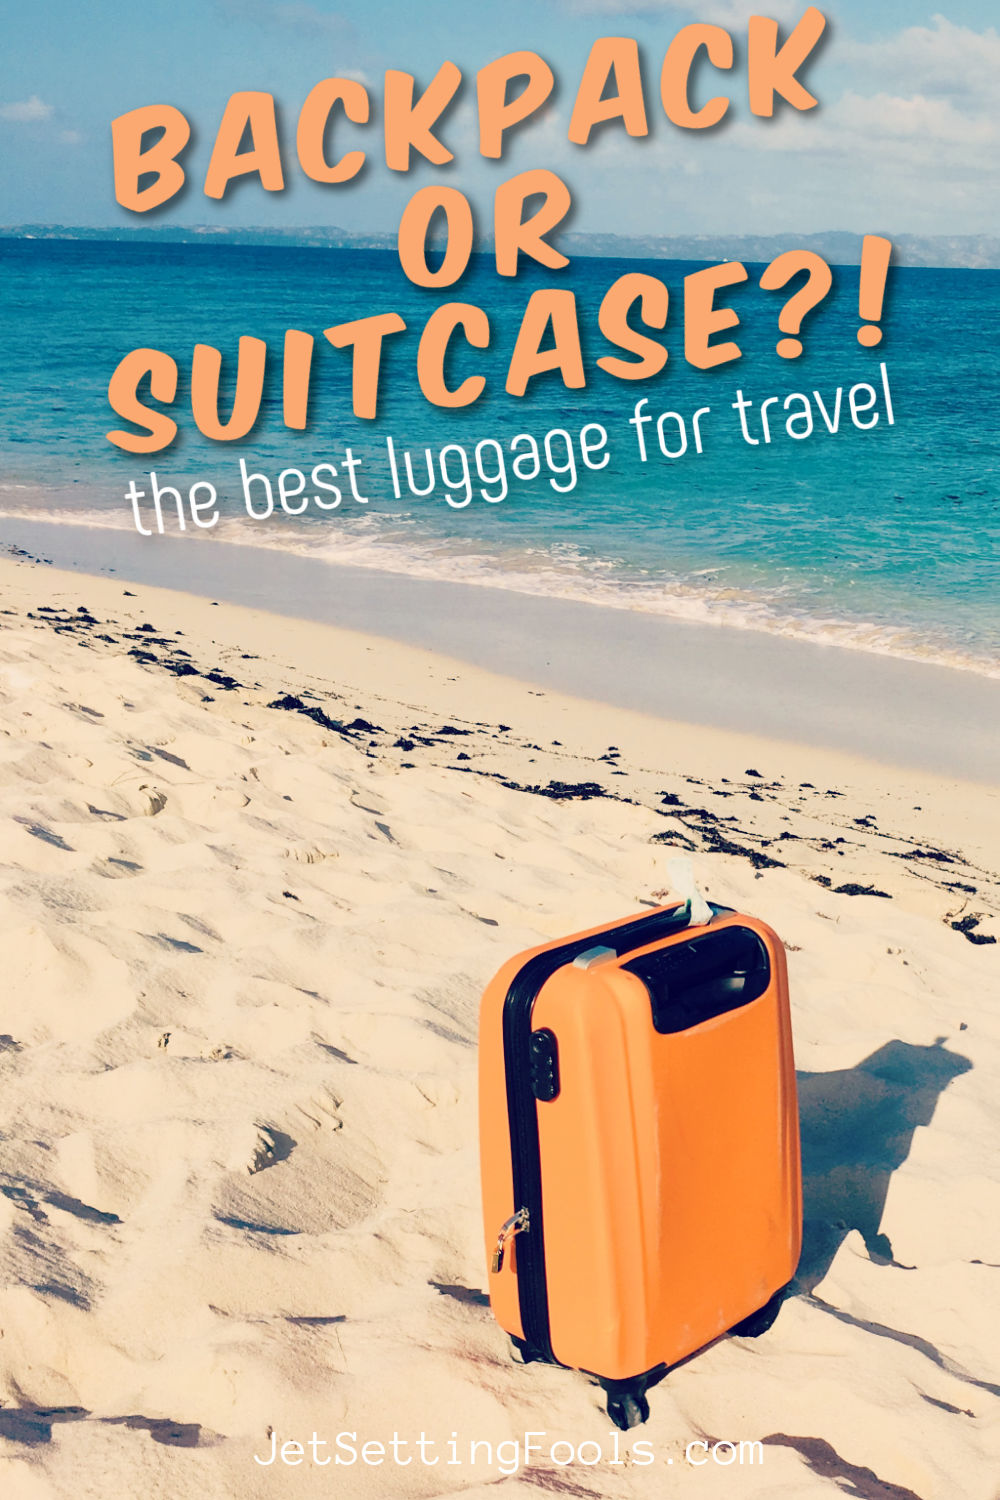 Backpack or Suitcase for Travel by JetSettingFools.com